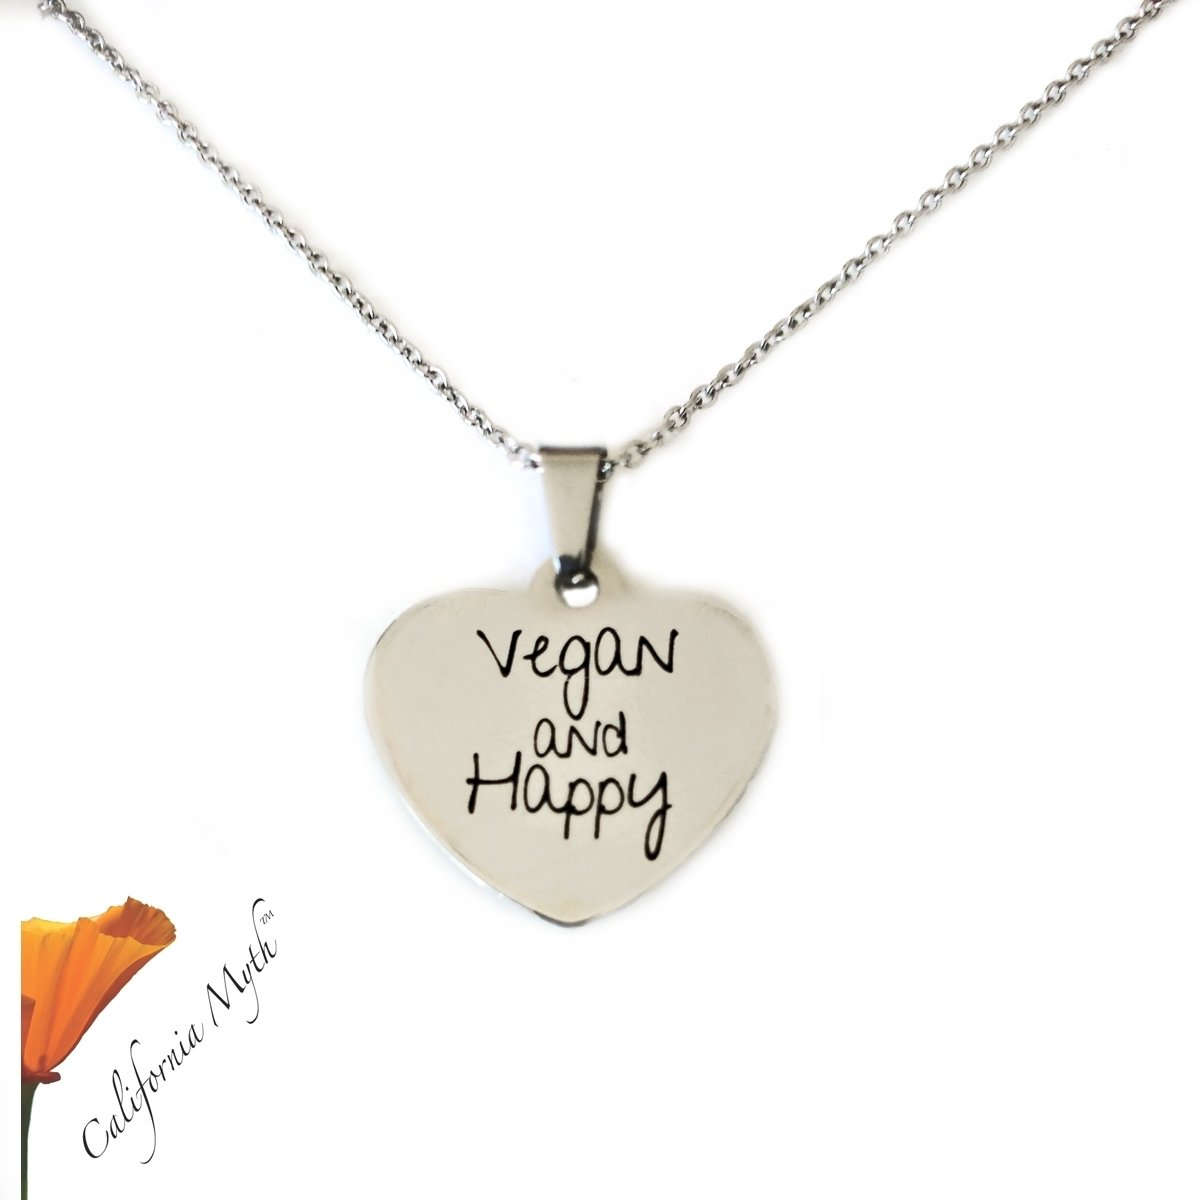 Vegan and Happy Heart Pendant Necklace